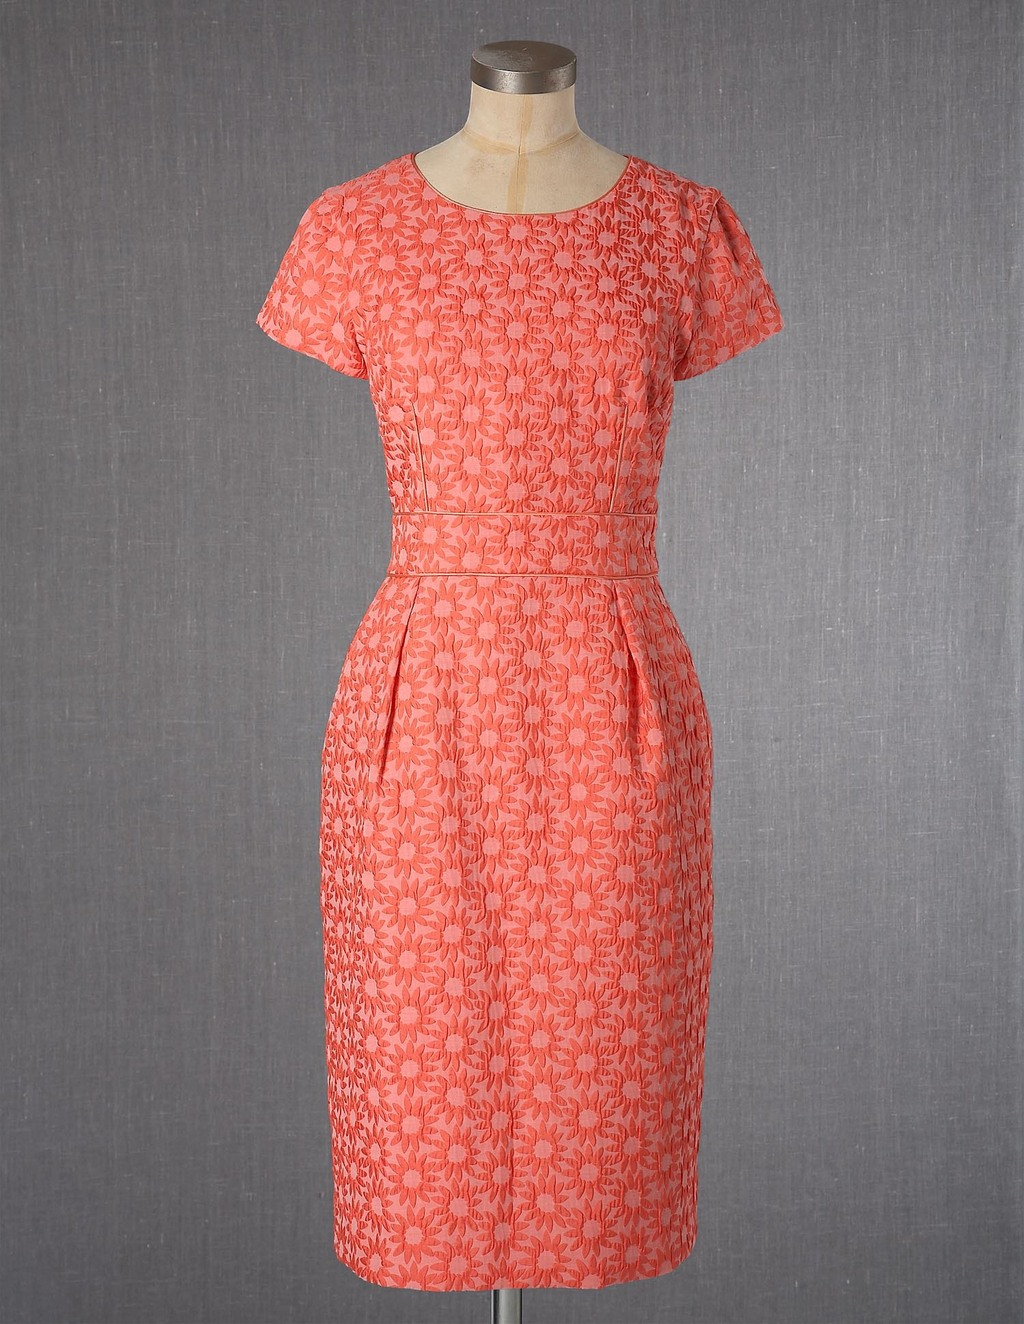 Daisy Jacquard Dress - style: shift; neckline: round neck; fit: tailored/fitted; secondary colour: ivory/cream; predominant colour: coral; occasions: casual; length: on the knee; fibres: polyester/polyamide - stretch; hip detail: adds bulk at the hips; sleeve length: short sleeve; sleeve style: standard; texture group: ornate wovens; pattern type: fabric; pattern size: light/subtle; pattern: florals; season: a/w 2013